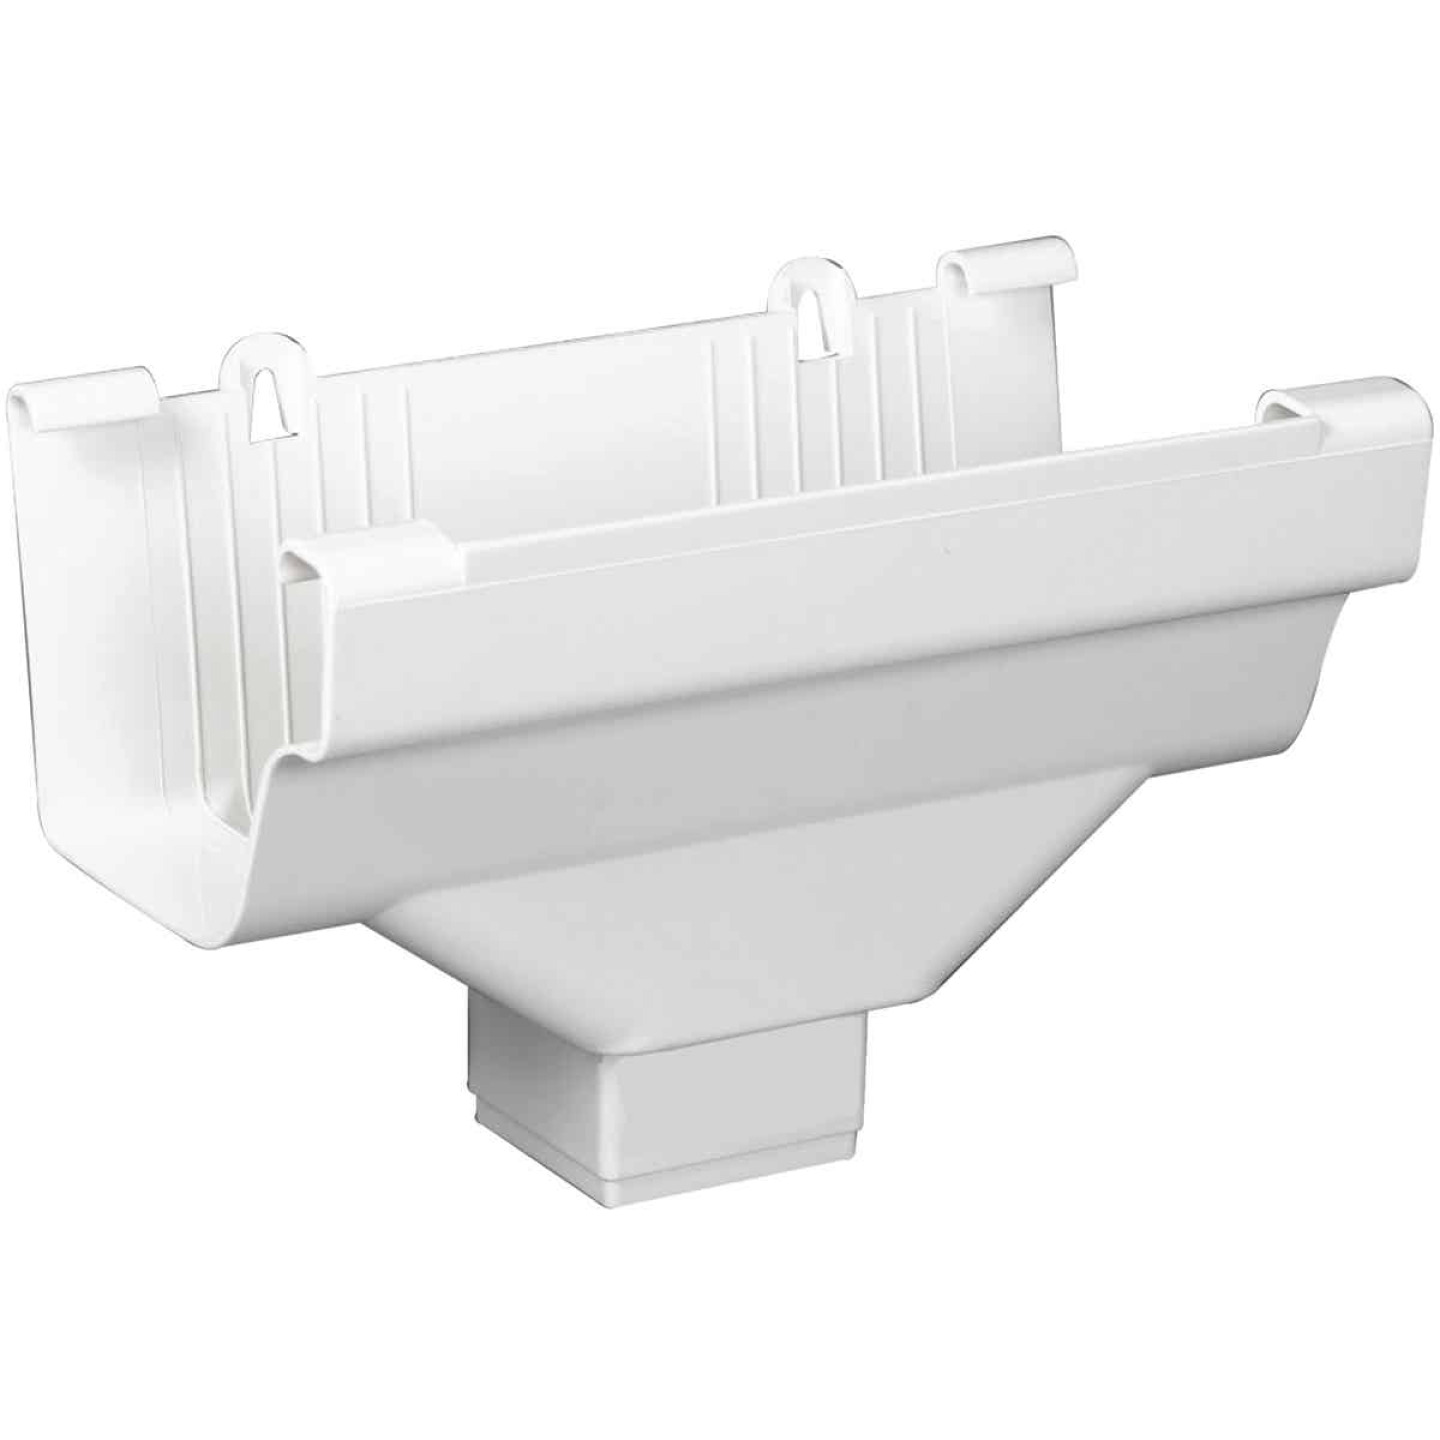 Amerimax 5 In. End with 2 In. x 3 In. Drop Outlet for White Vinyl Traditional K-Style Gutter Image 1